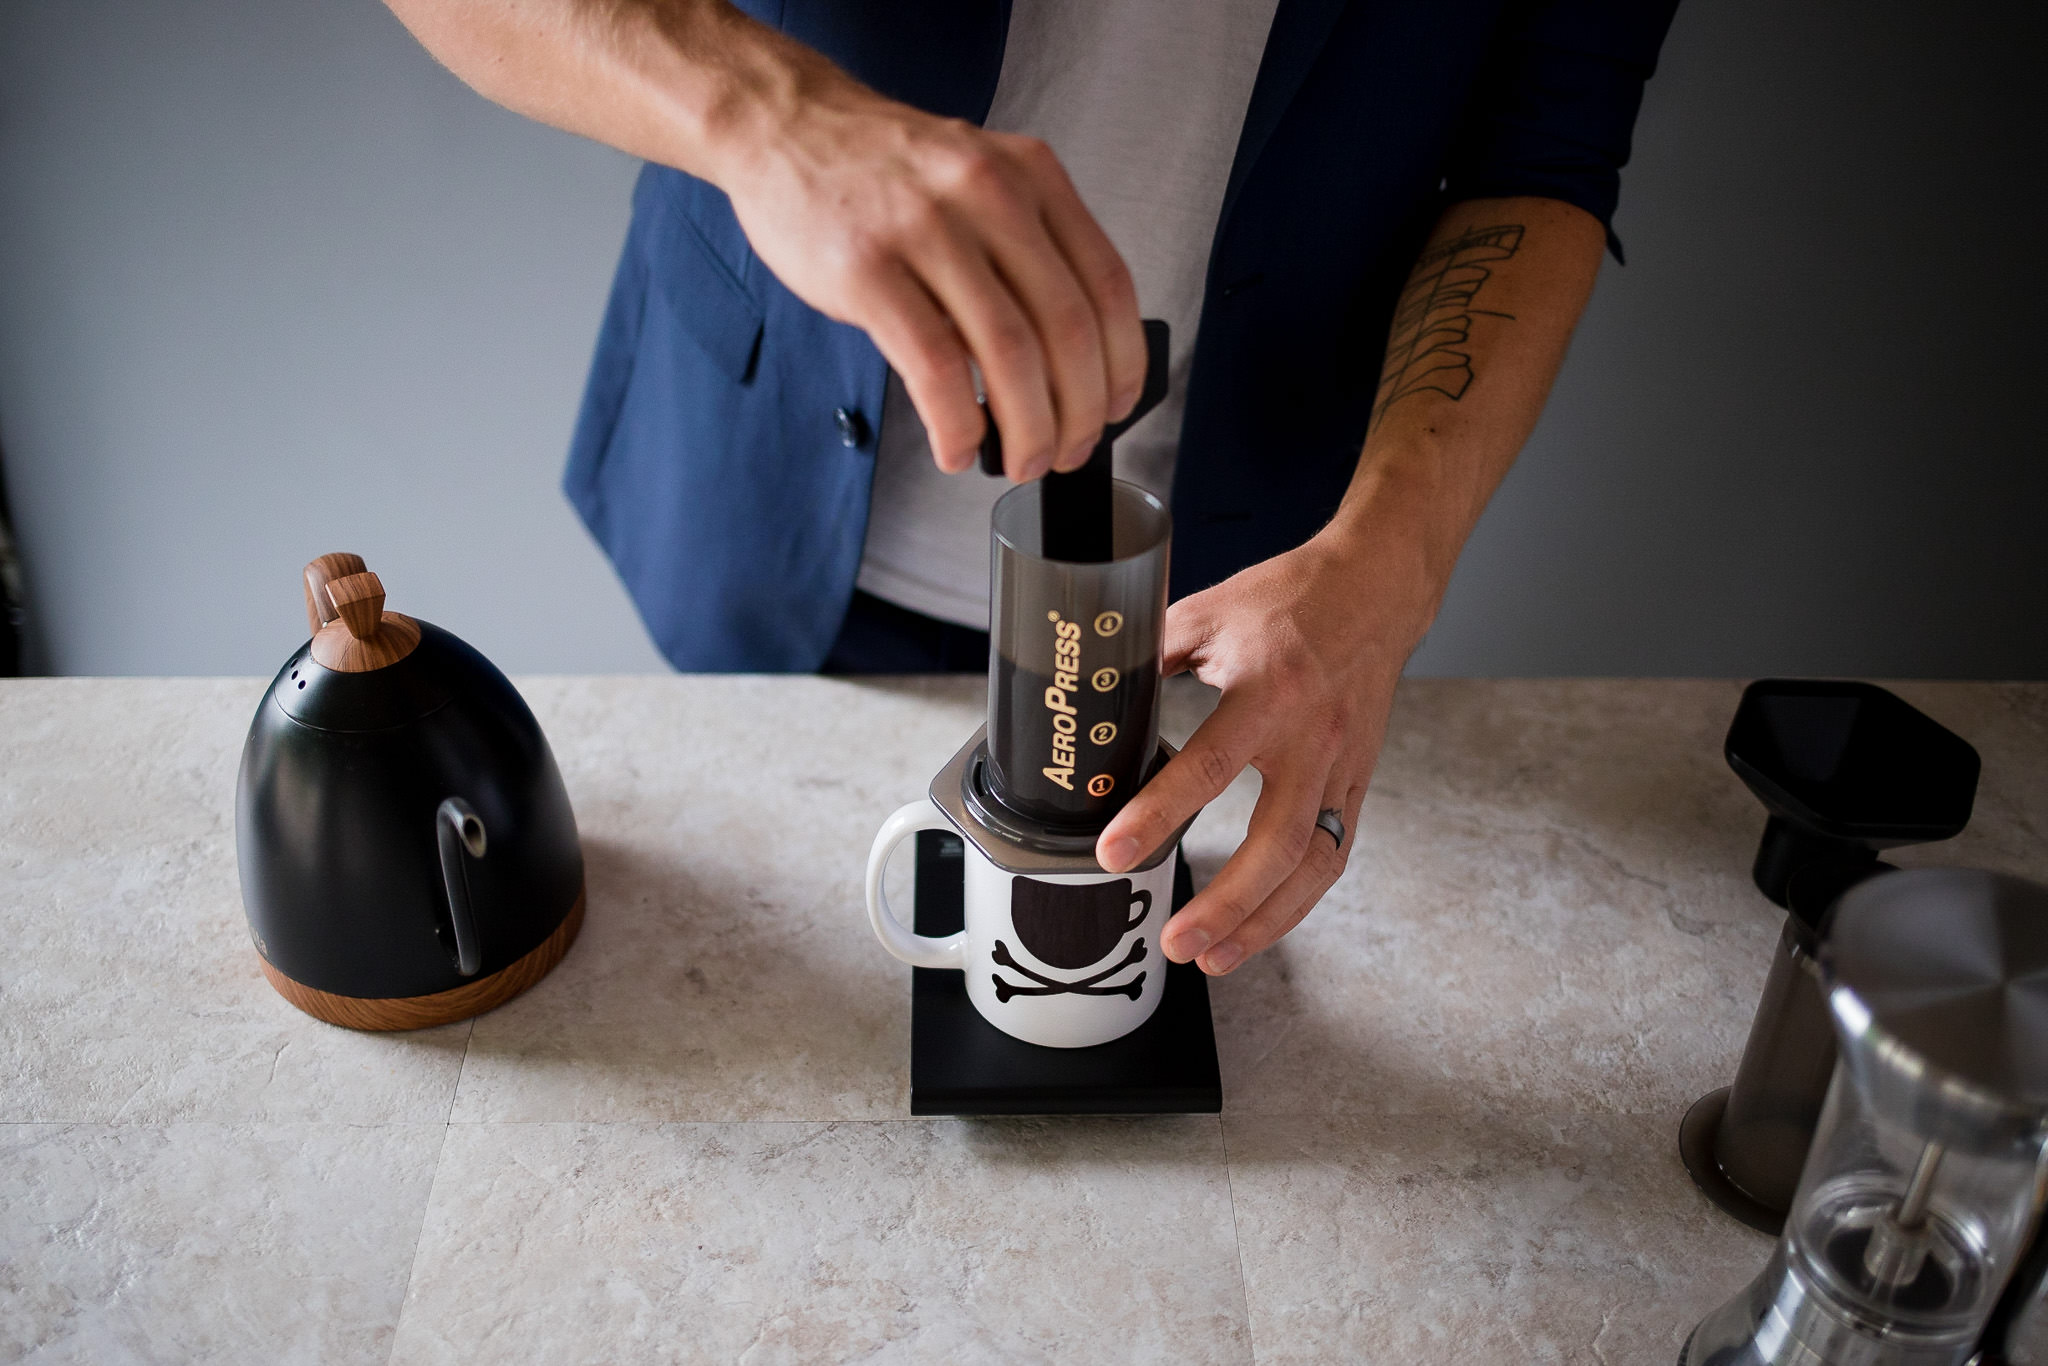 Use agitation to fully extract complex coffee flavors in an Aeropress